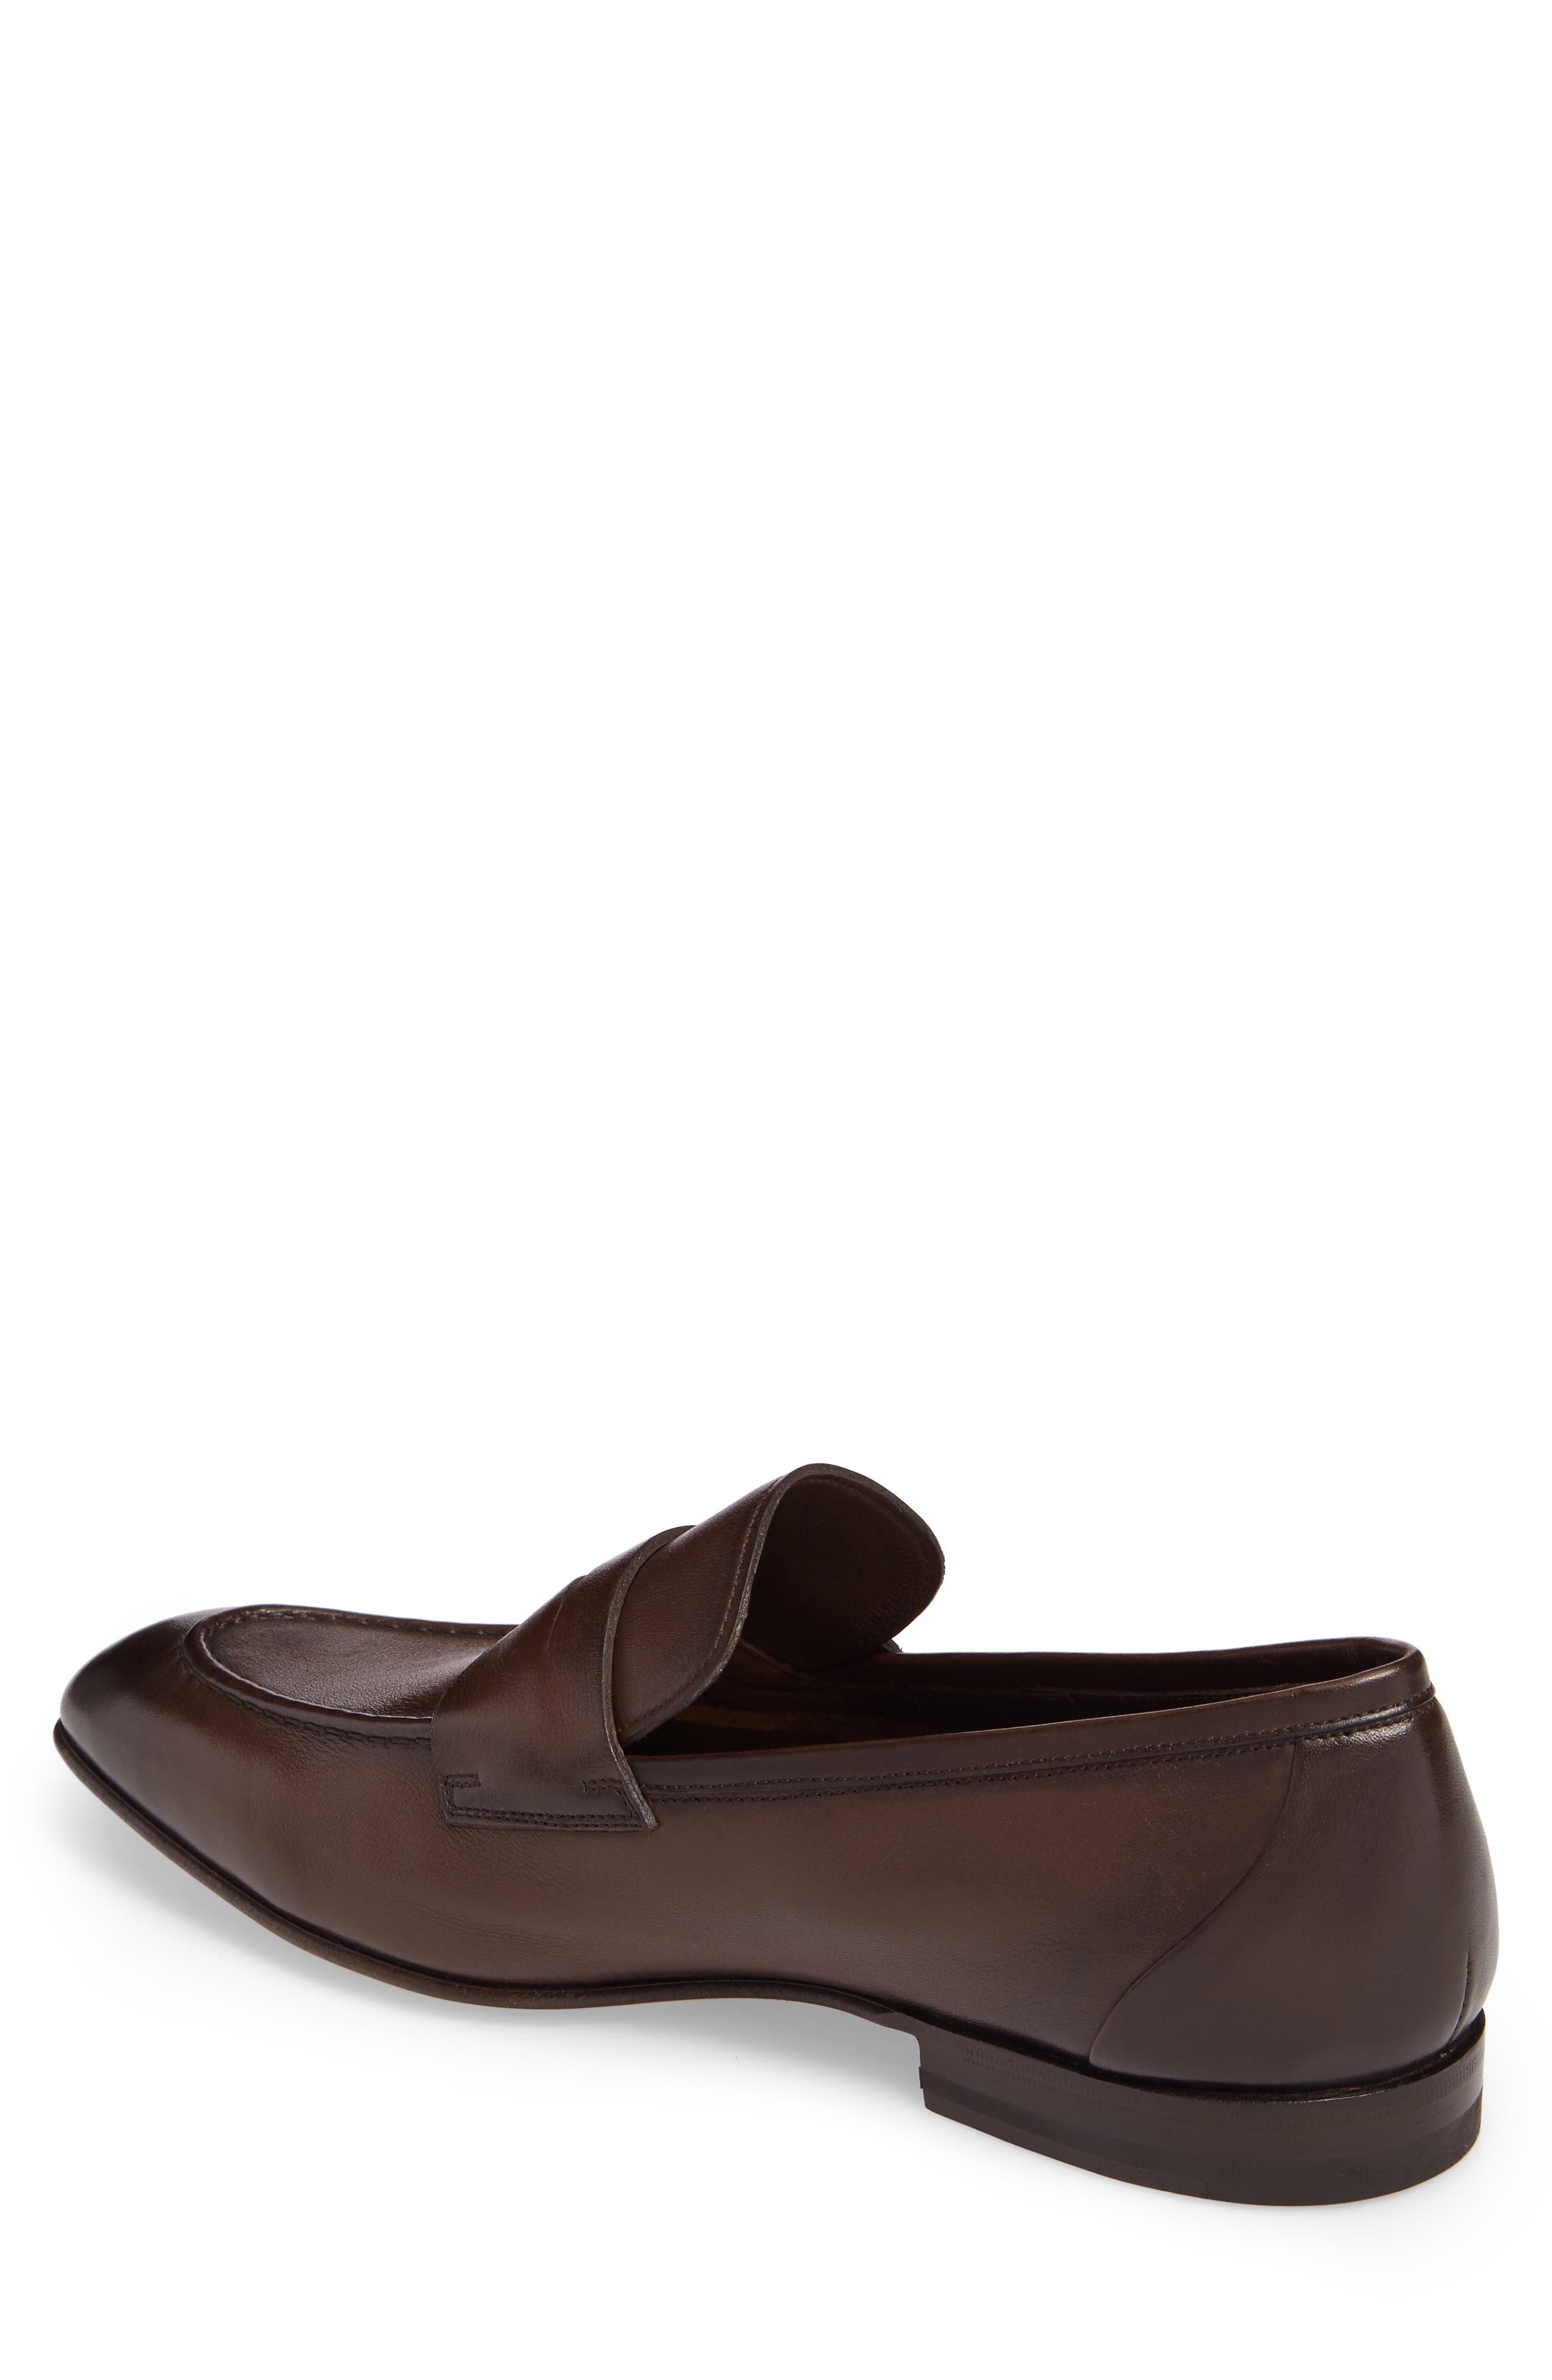 SANTONI, Gannon Penny Loafer, Alternate thumbnail 2, color, BROWN